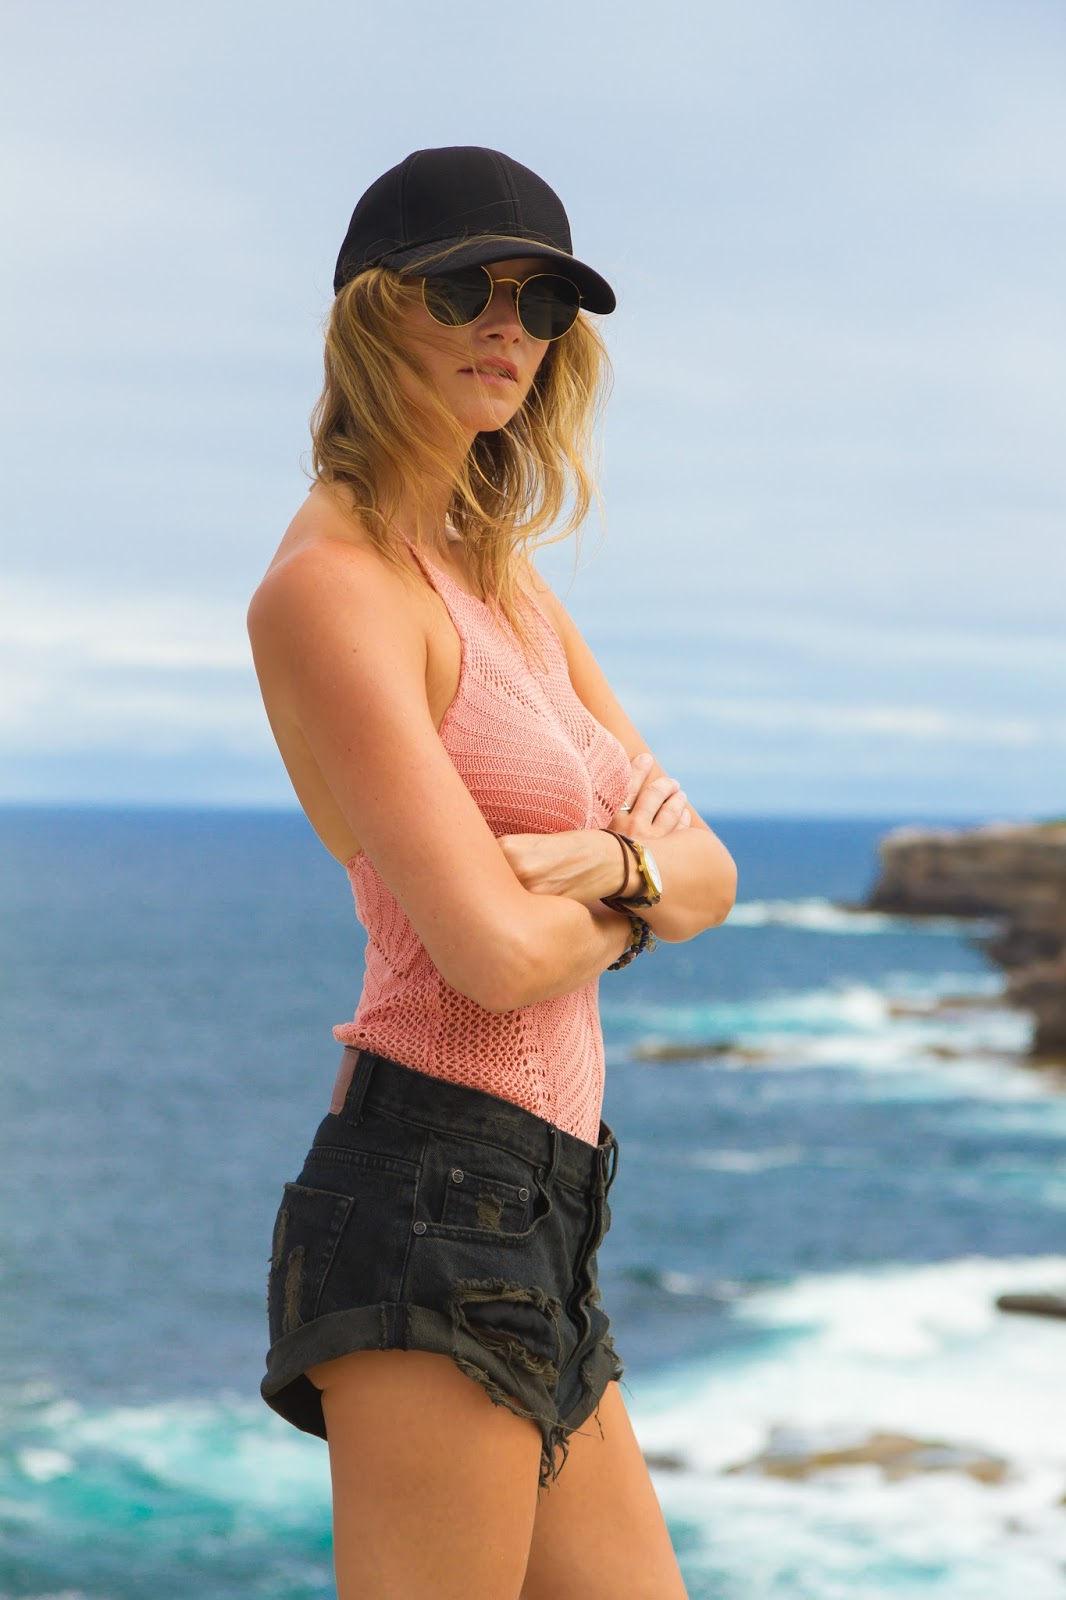 fashion and travel blogger, Alison Hutchinson, at the cliffs of Kurnell in Sydney Australia